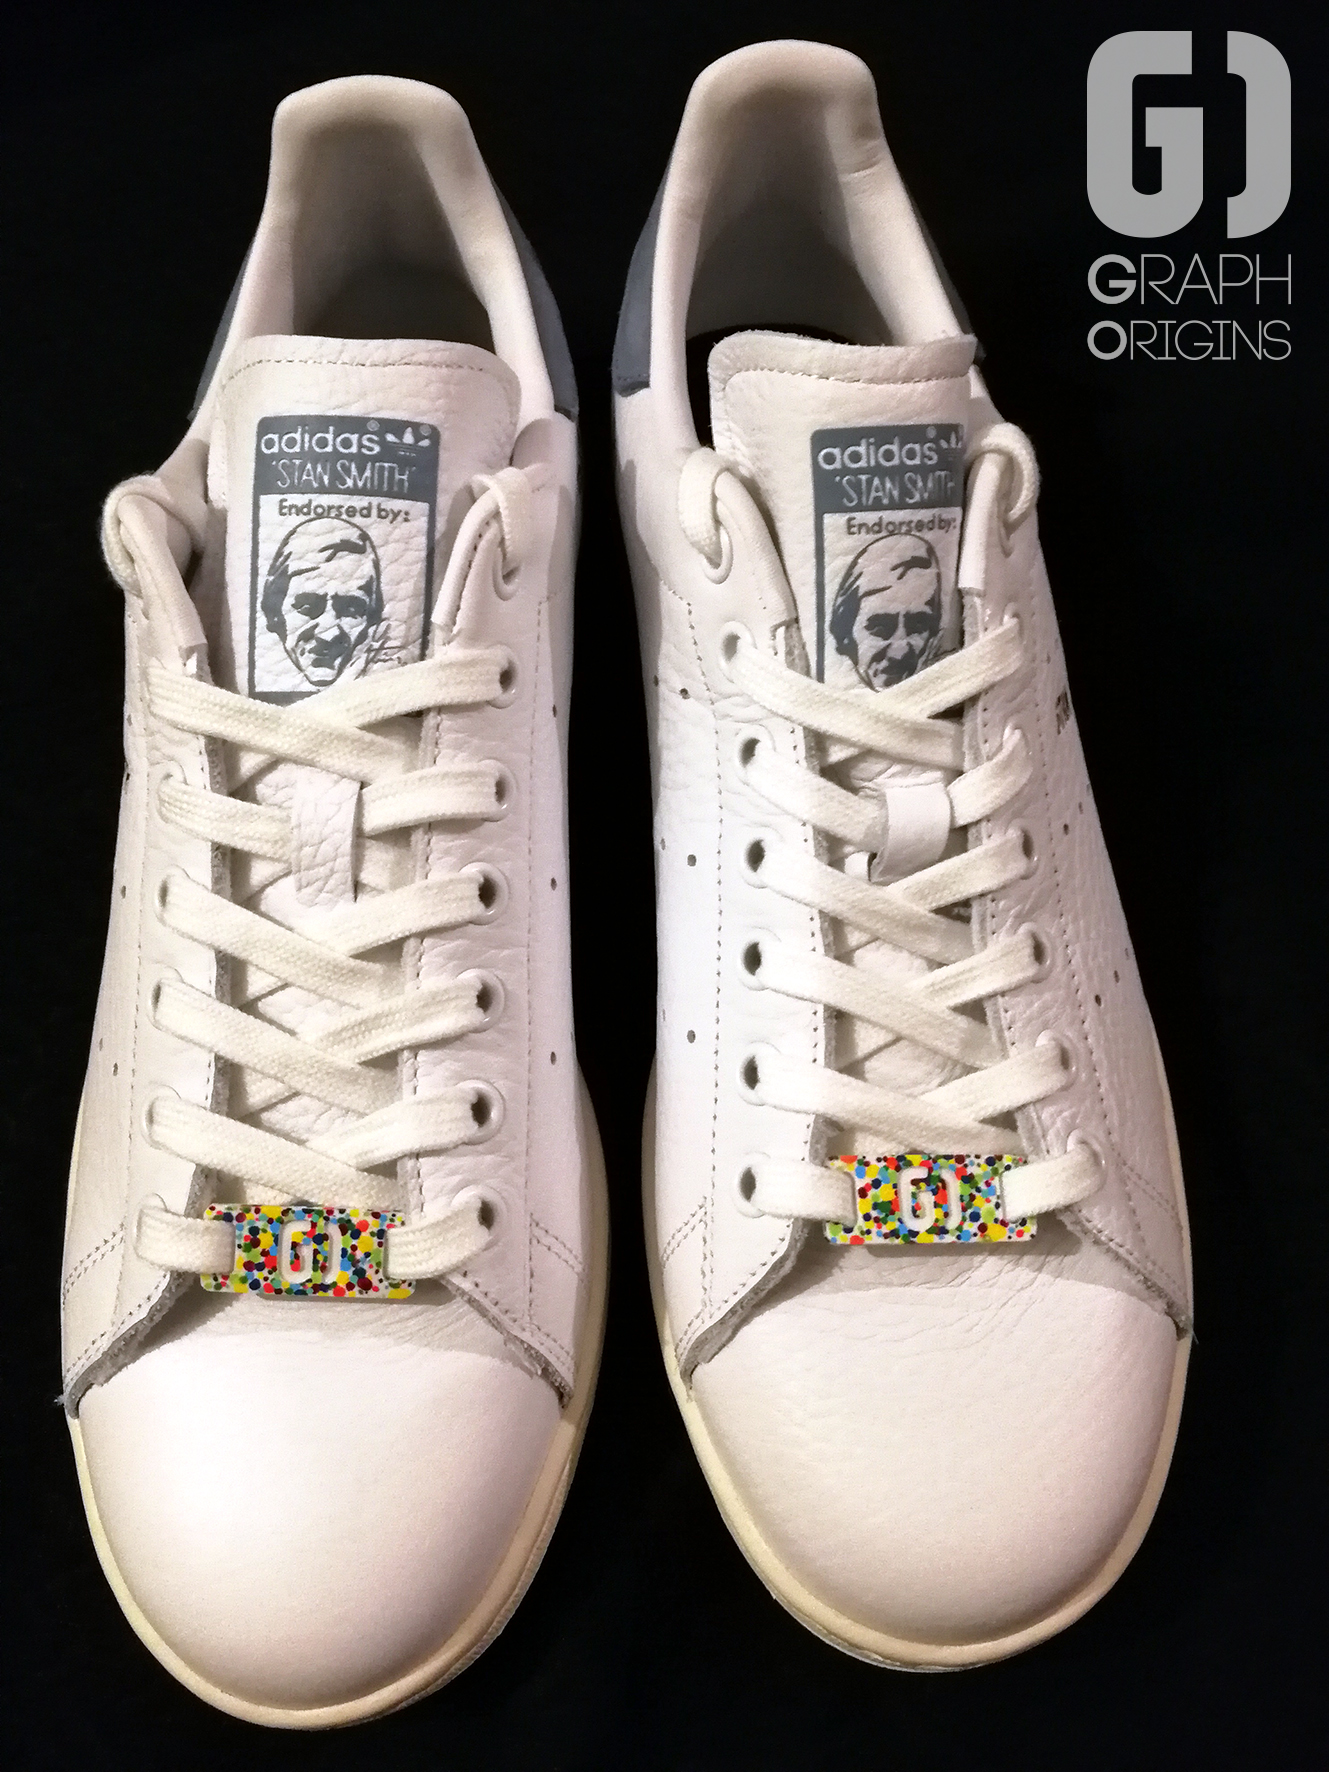 Custom baskets adidas Stan Smith Feliz Cumple graph origins 6